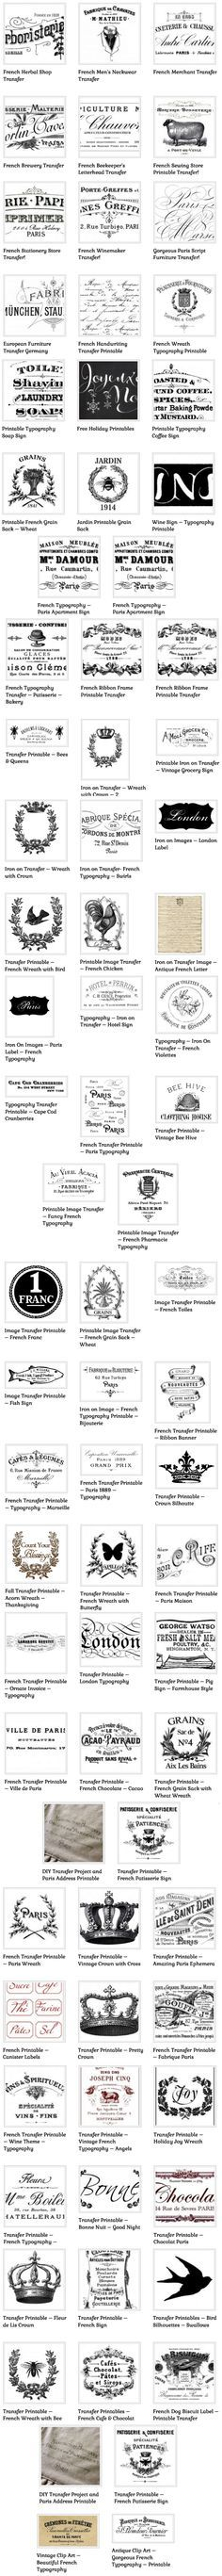 82 French typography printables.  Graphics Fairy.